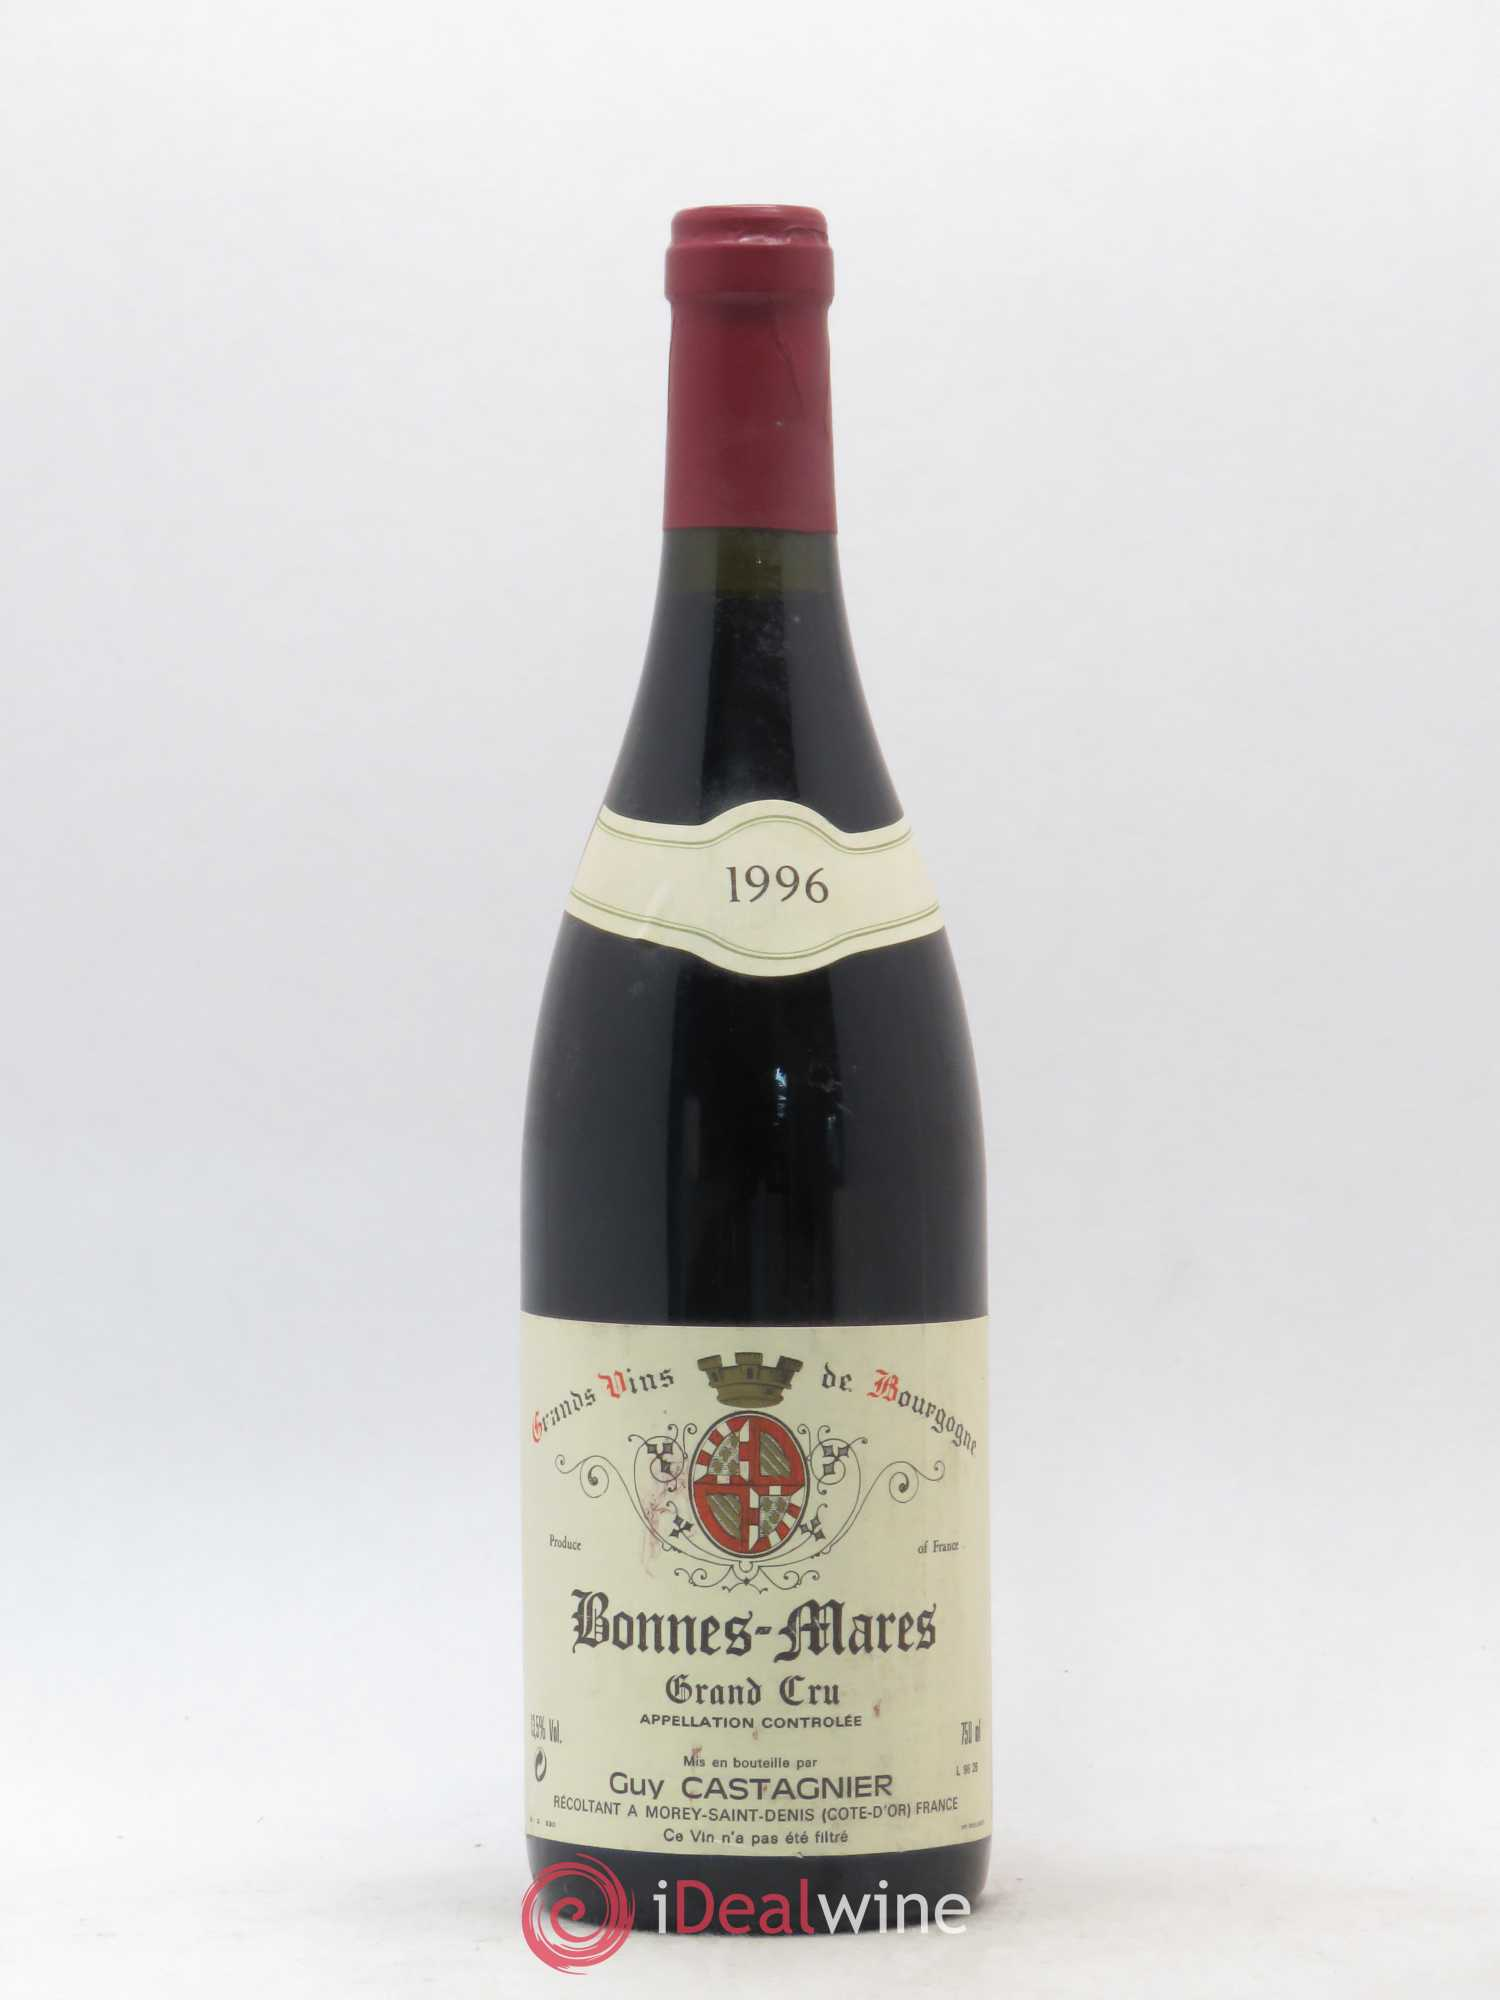 Bonnes-Mares Grand Cru Guy Castagnier 1996 - Lot of 1 Bottle